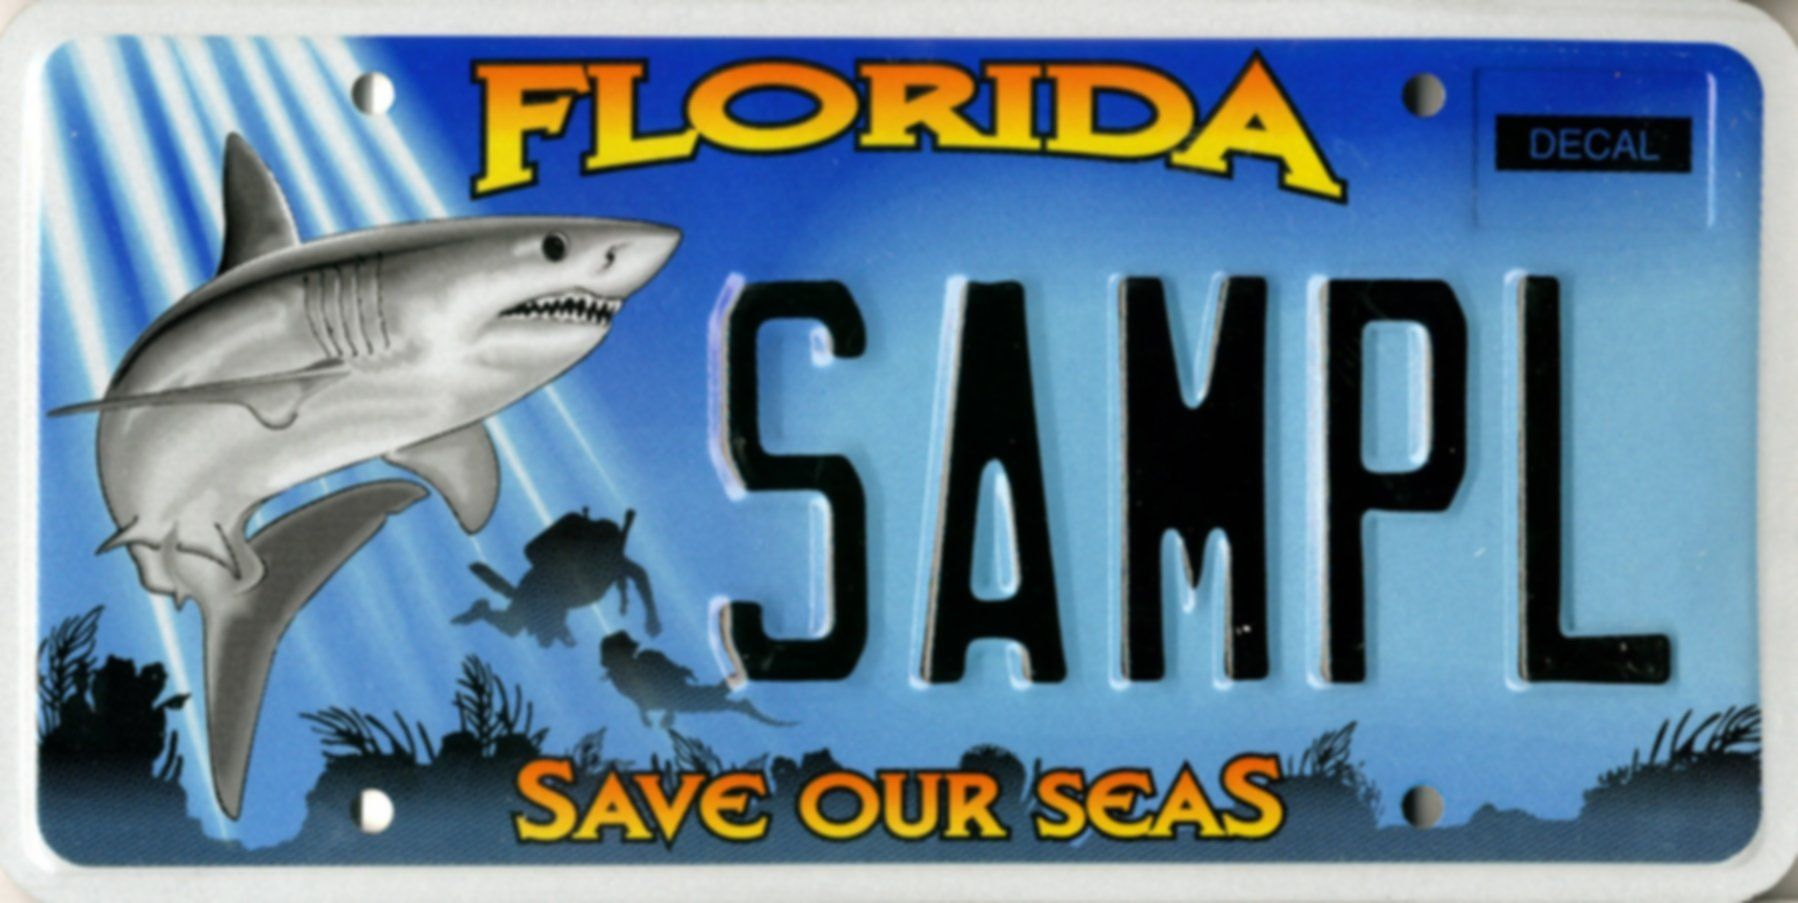 SaveOurSeas (The tag I have) Buy this plate & help fund